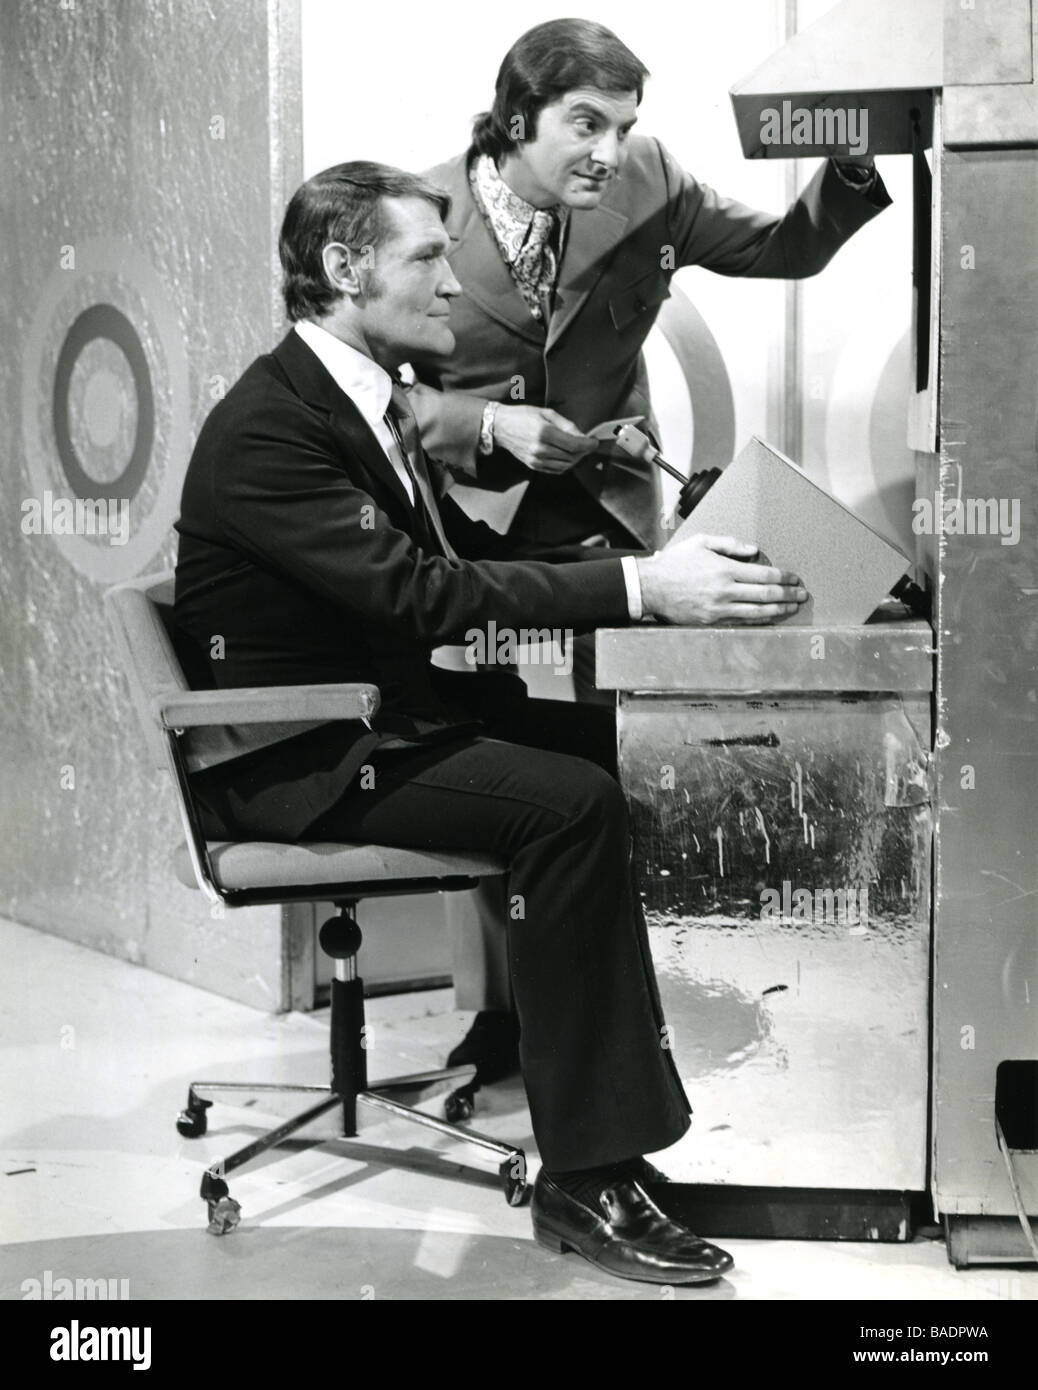 Le GOLDEN SHOT 1960 UK TV Game Show avec compere Bob Monkhouse comité permanent et l'acteur Patrick Allan Photo Stock